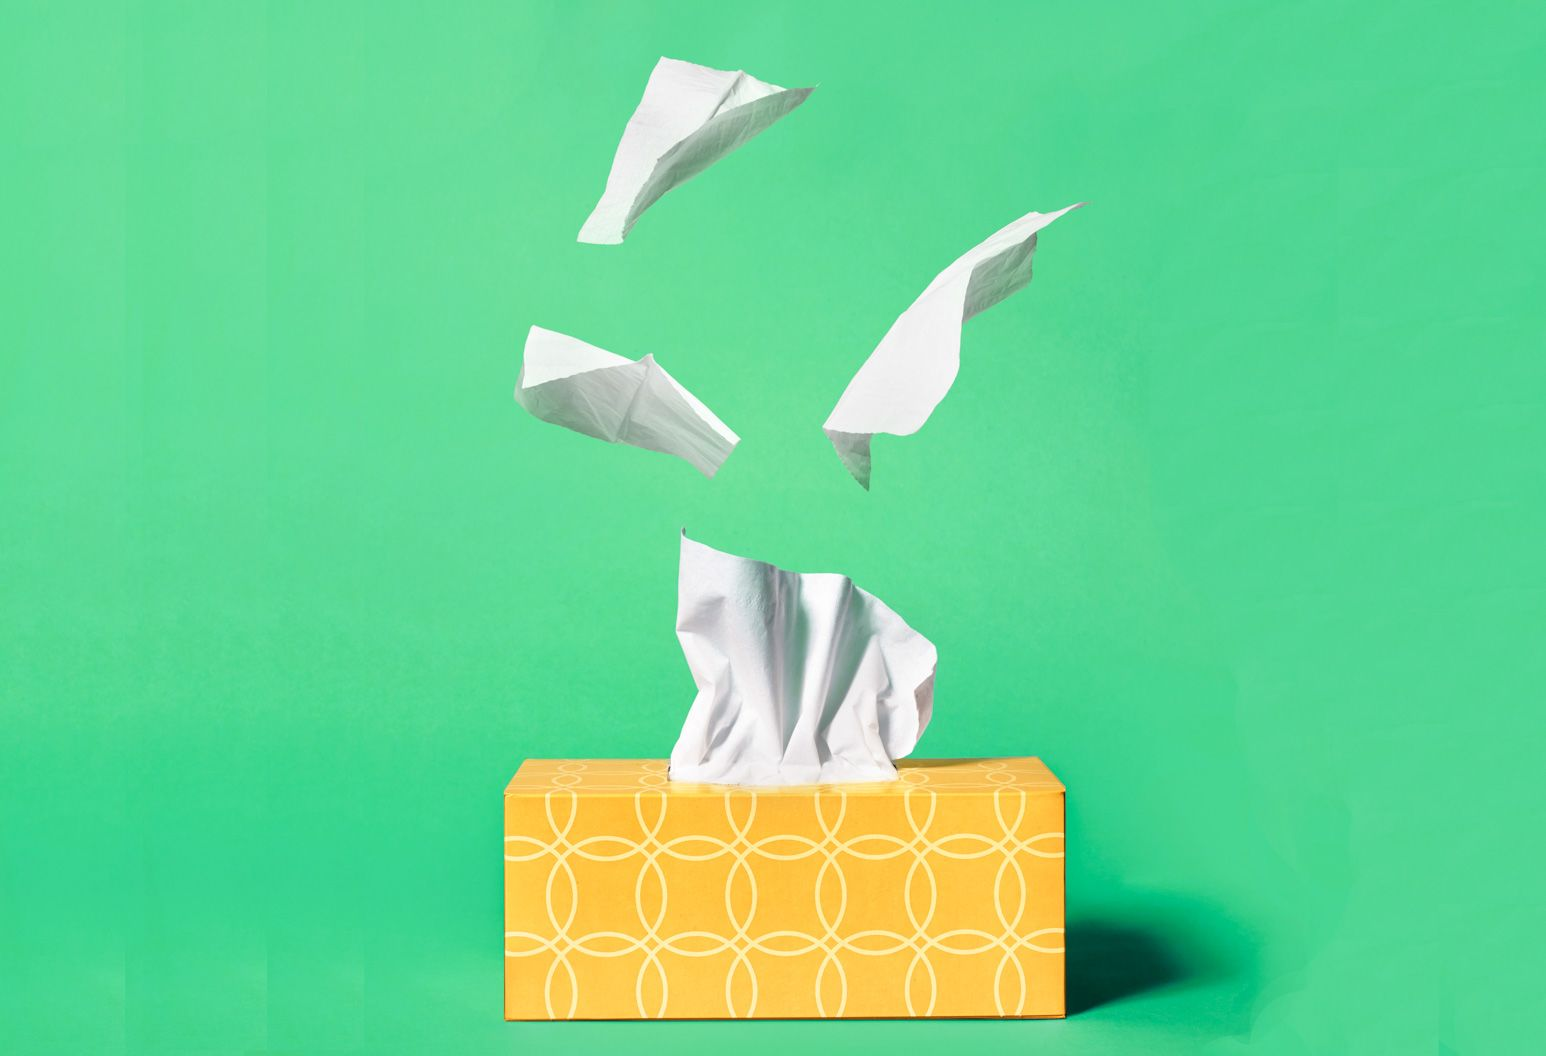 A yellow box of tissues sits in front of a kelly green background. Tissues are flying out of the box.